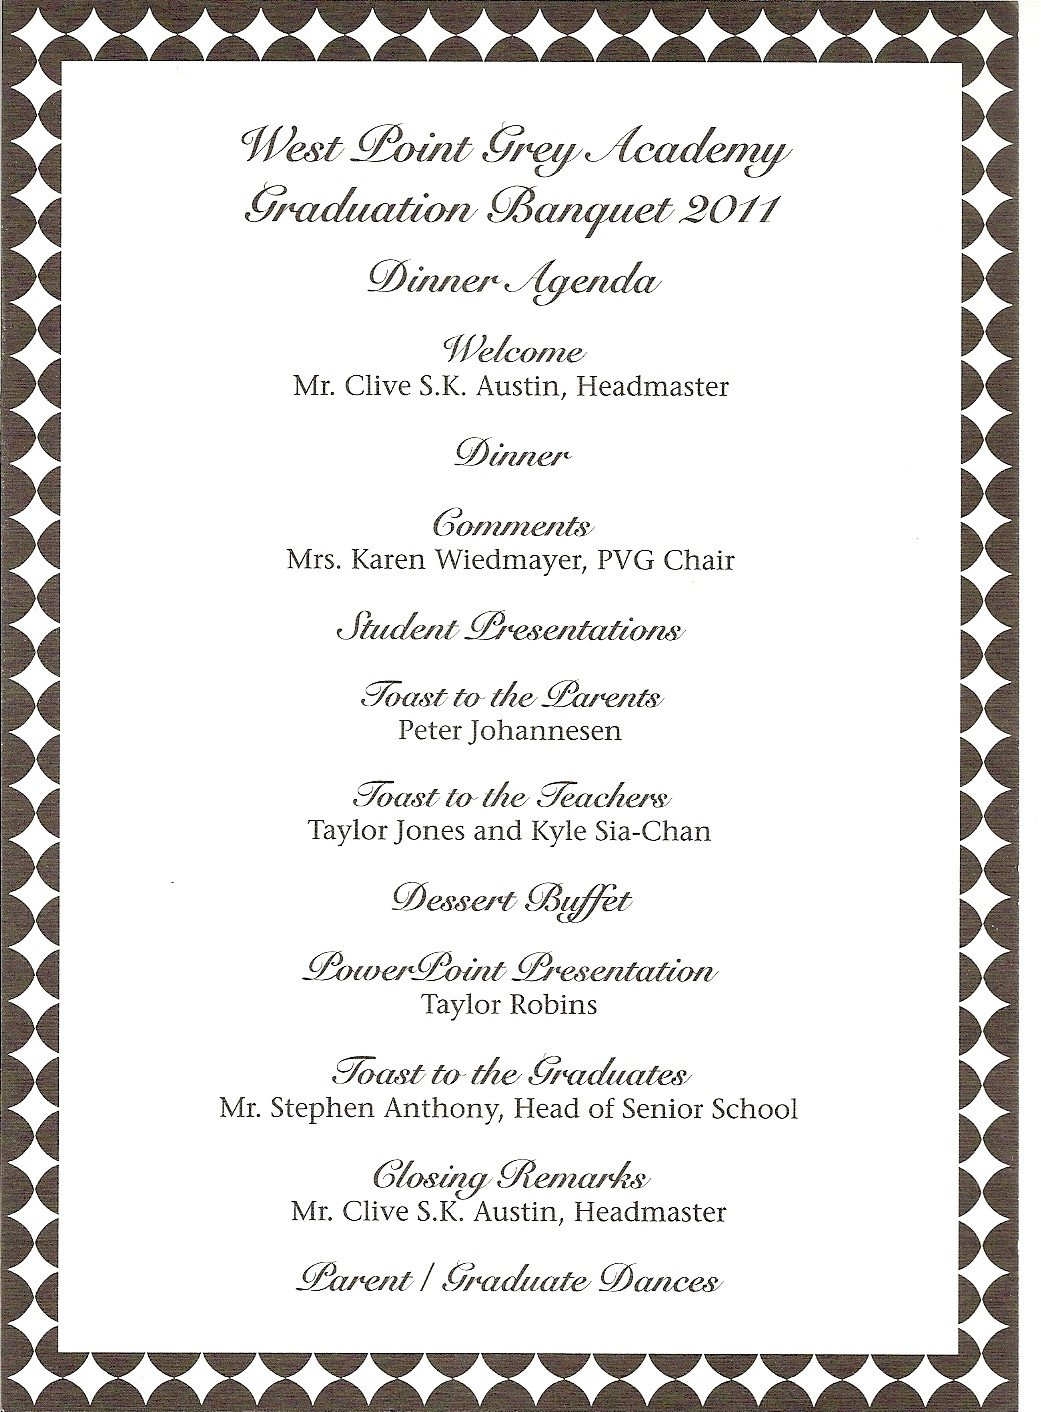 Family Reunion Banquet Program Sample Donna S Report Wpga Graduation Banquet Teddy